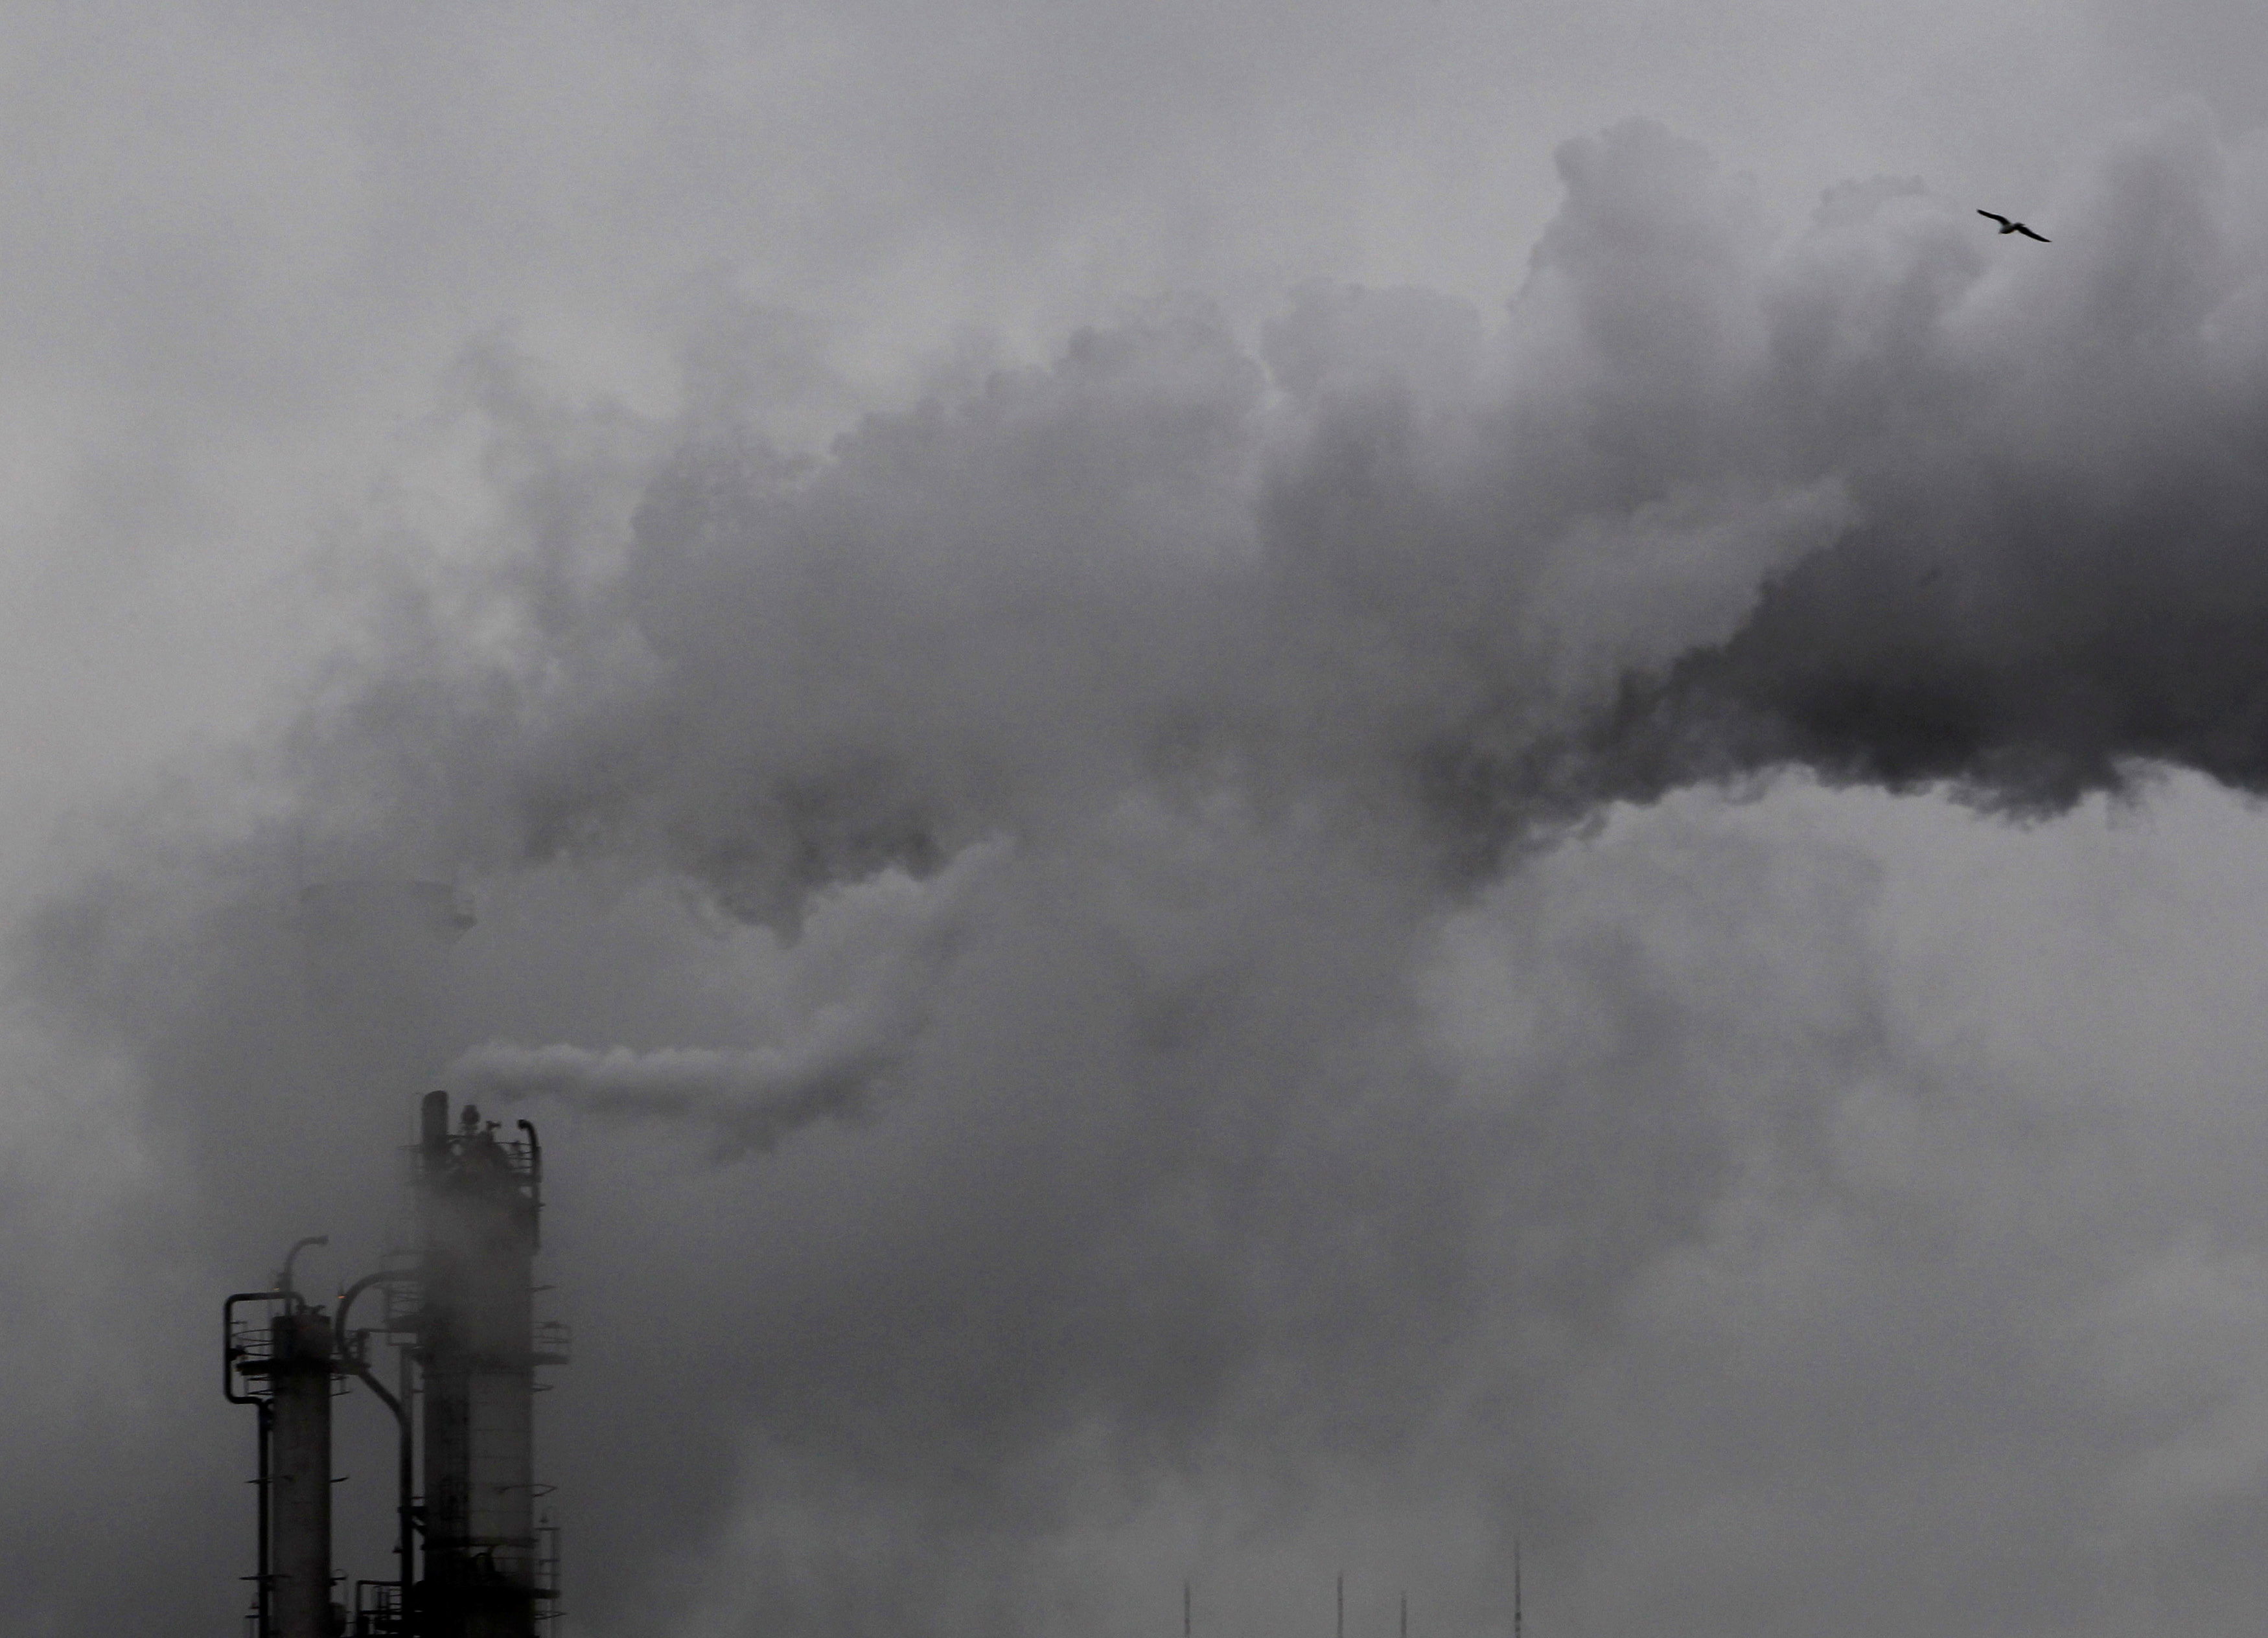 Smoke billows from chimneys at an industrial district near Tokyo February 28, 2011. REUTERS/Kim Kyung-Hoon/File Photo